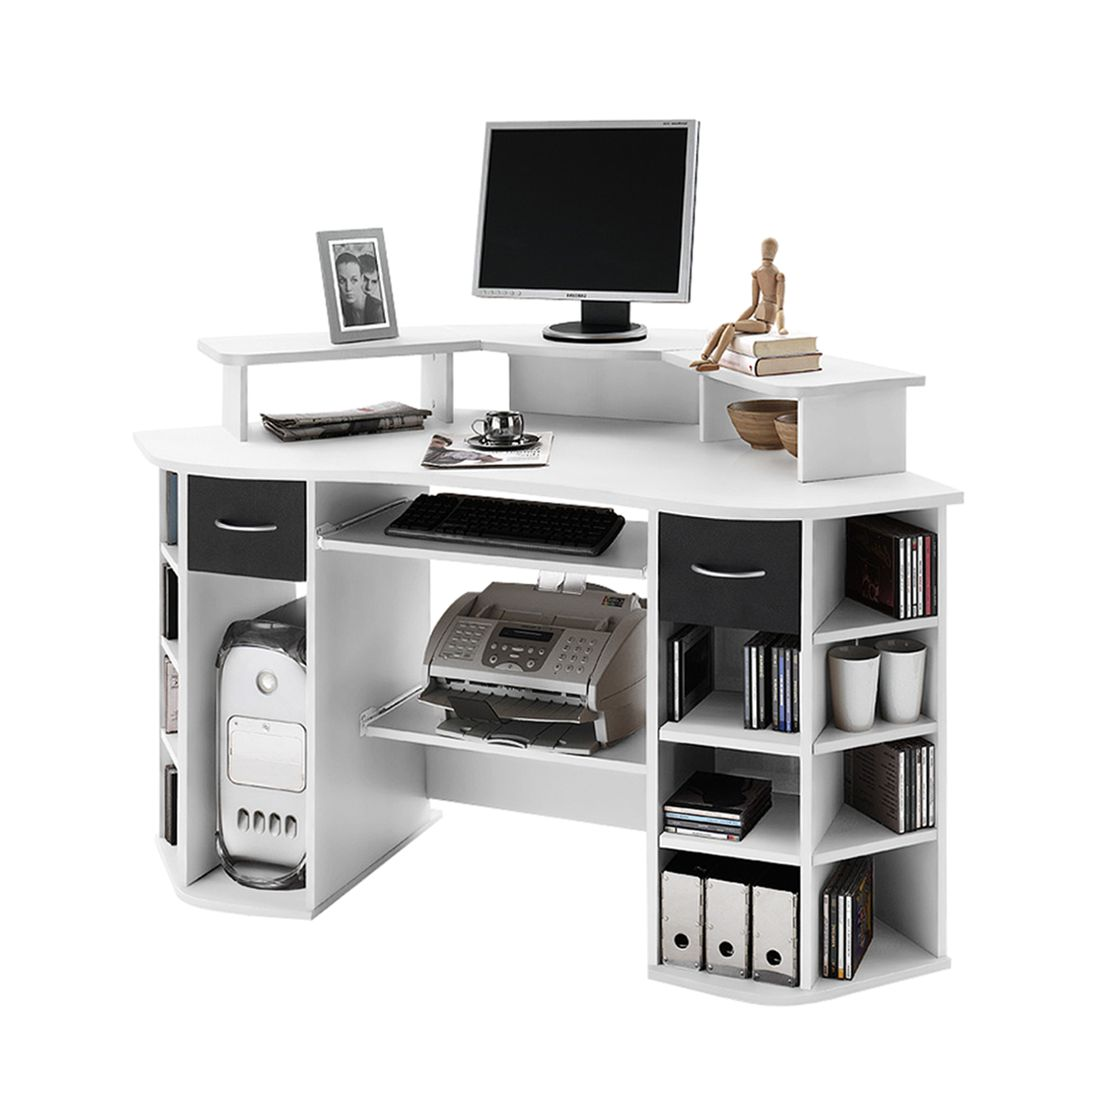 bureau ordinateur en coin images frompo 1. Black Bedroom Furniture Sets. Home Design Ideas